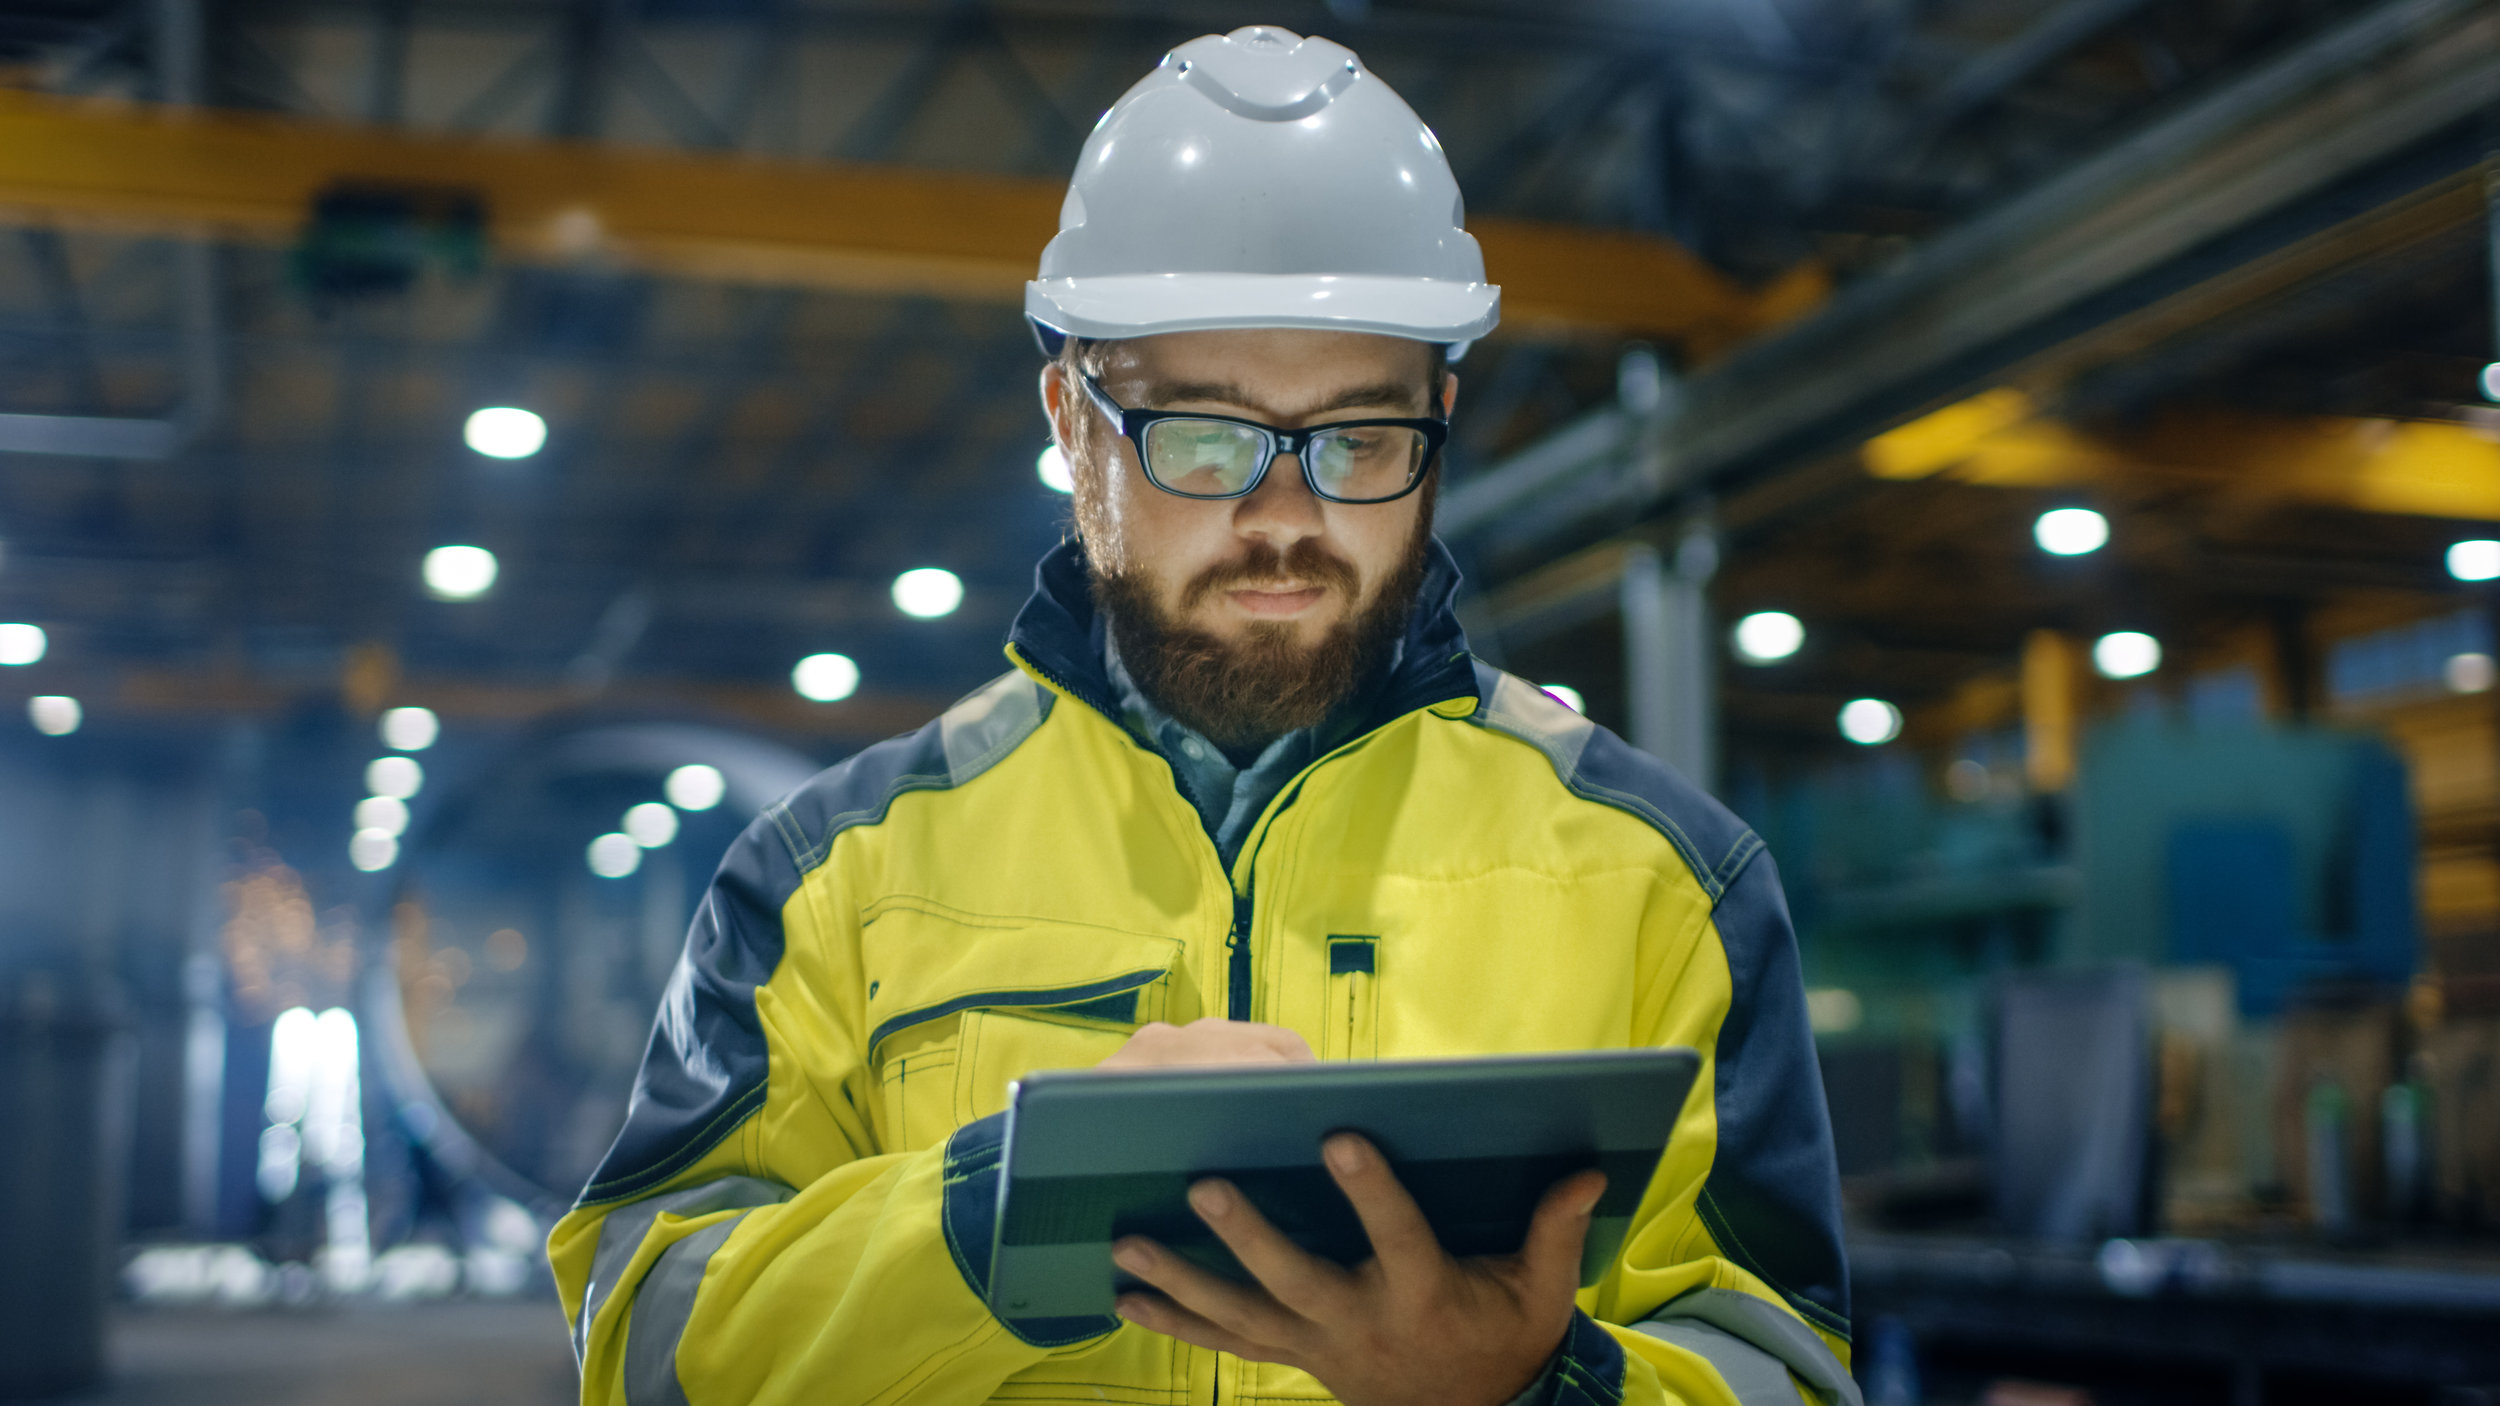 Man wearing hardhat uses construction mobile form on tablet